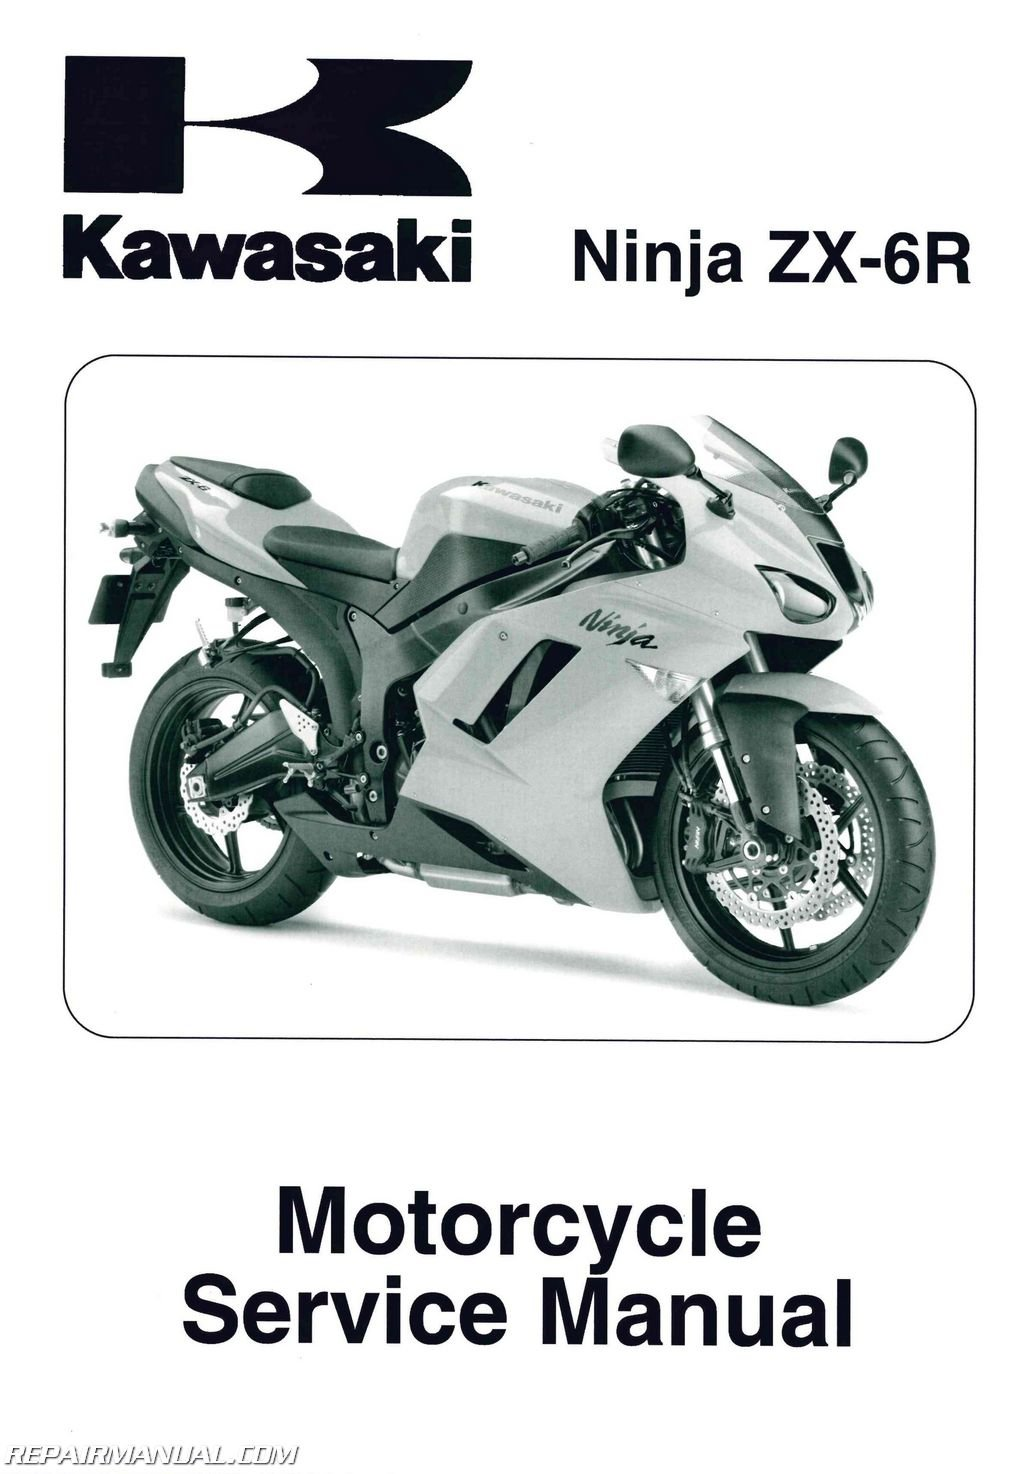 99924-1382-02 2007-2008 Kawasaki Ninja ZX-6R ZX600P Motorcycle Service  Manual: Manufacturer: Amazon.com: Books